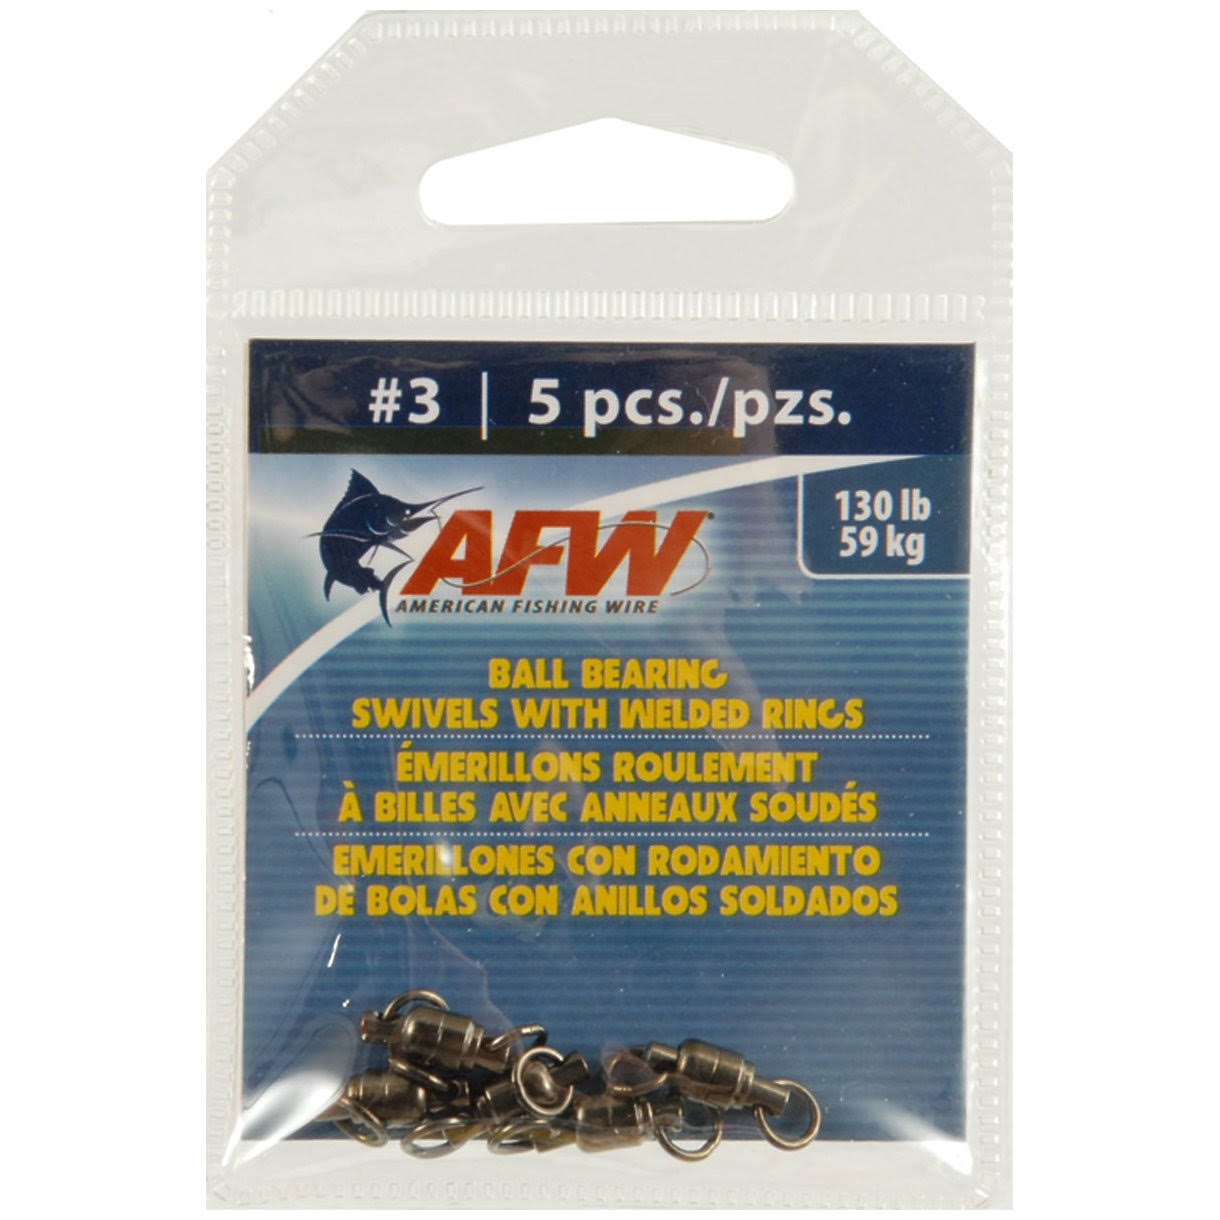 American Fishing Wire AFW Ball Bearing Swivels